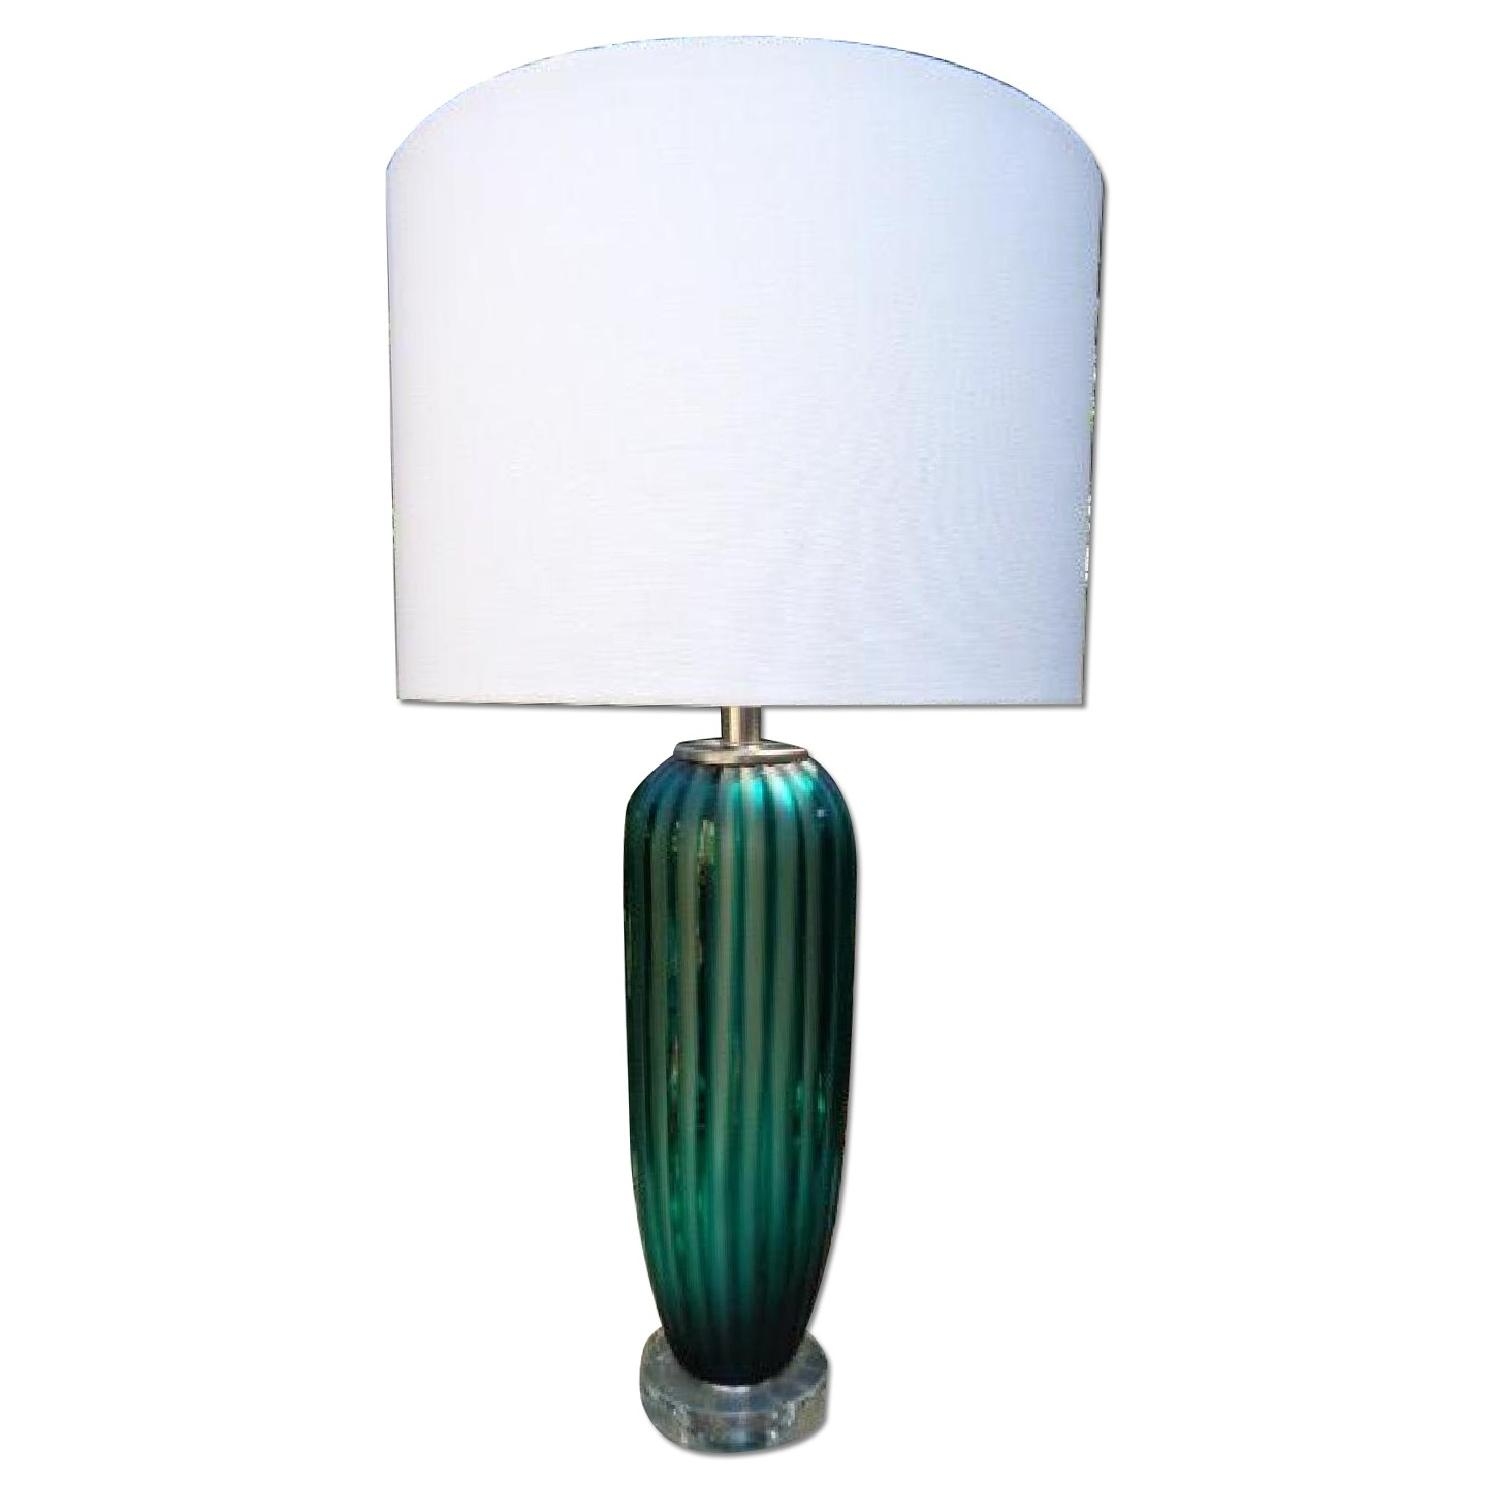 Reeded Murano Glass Table Lamp